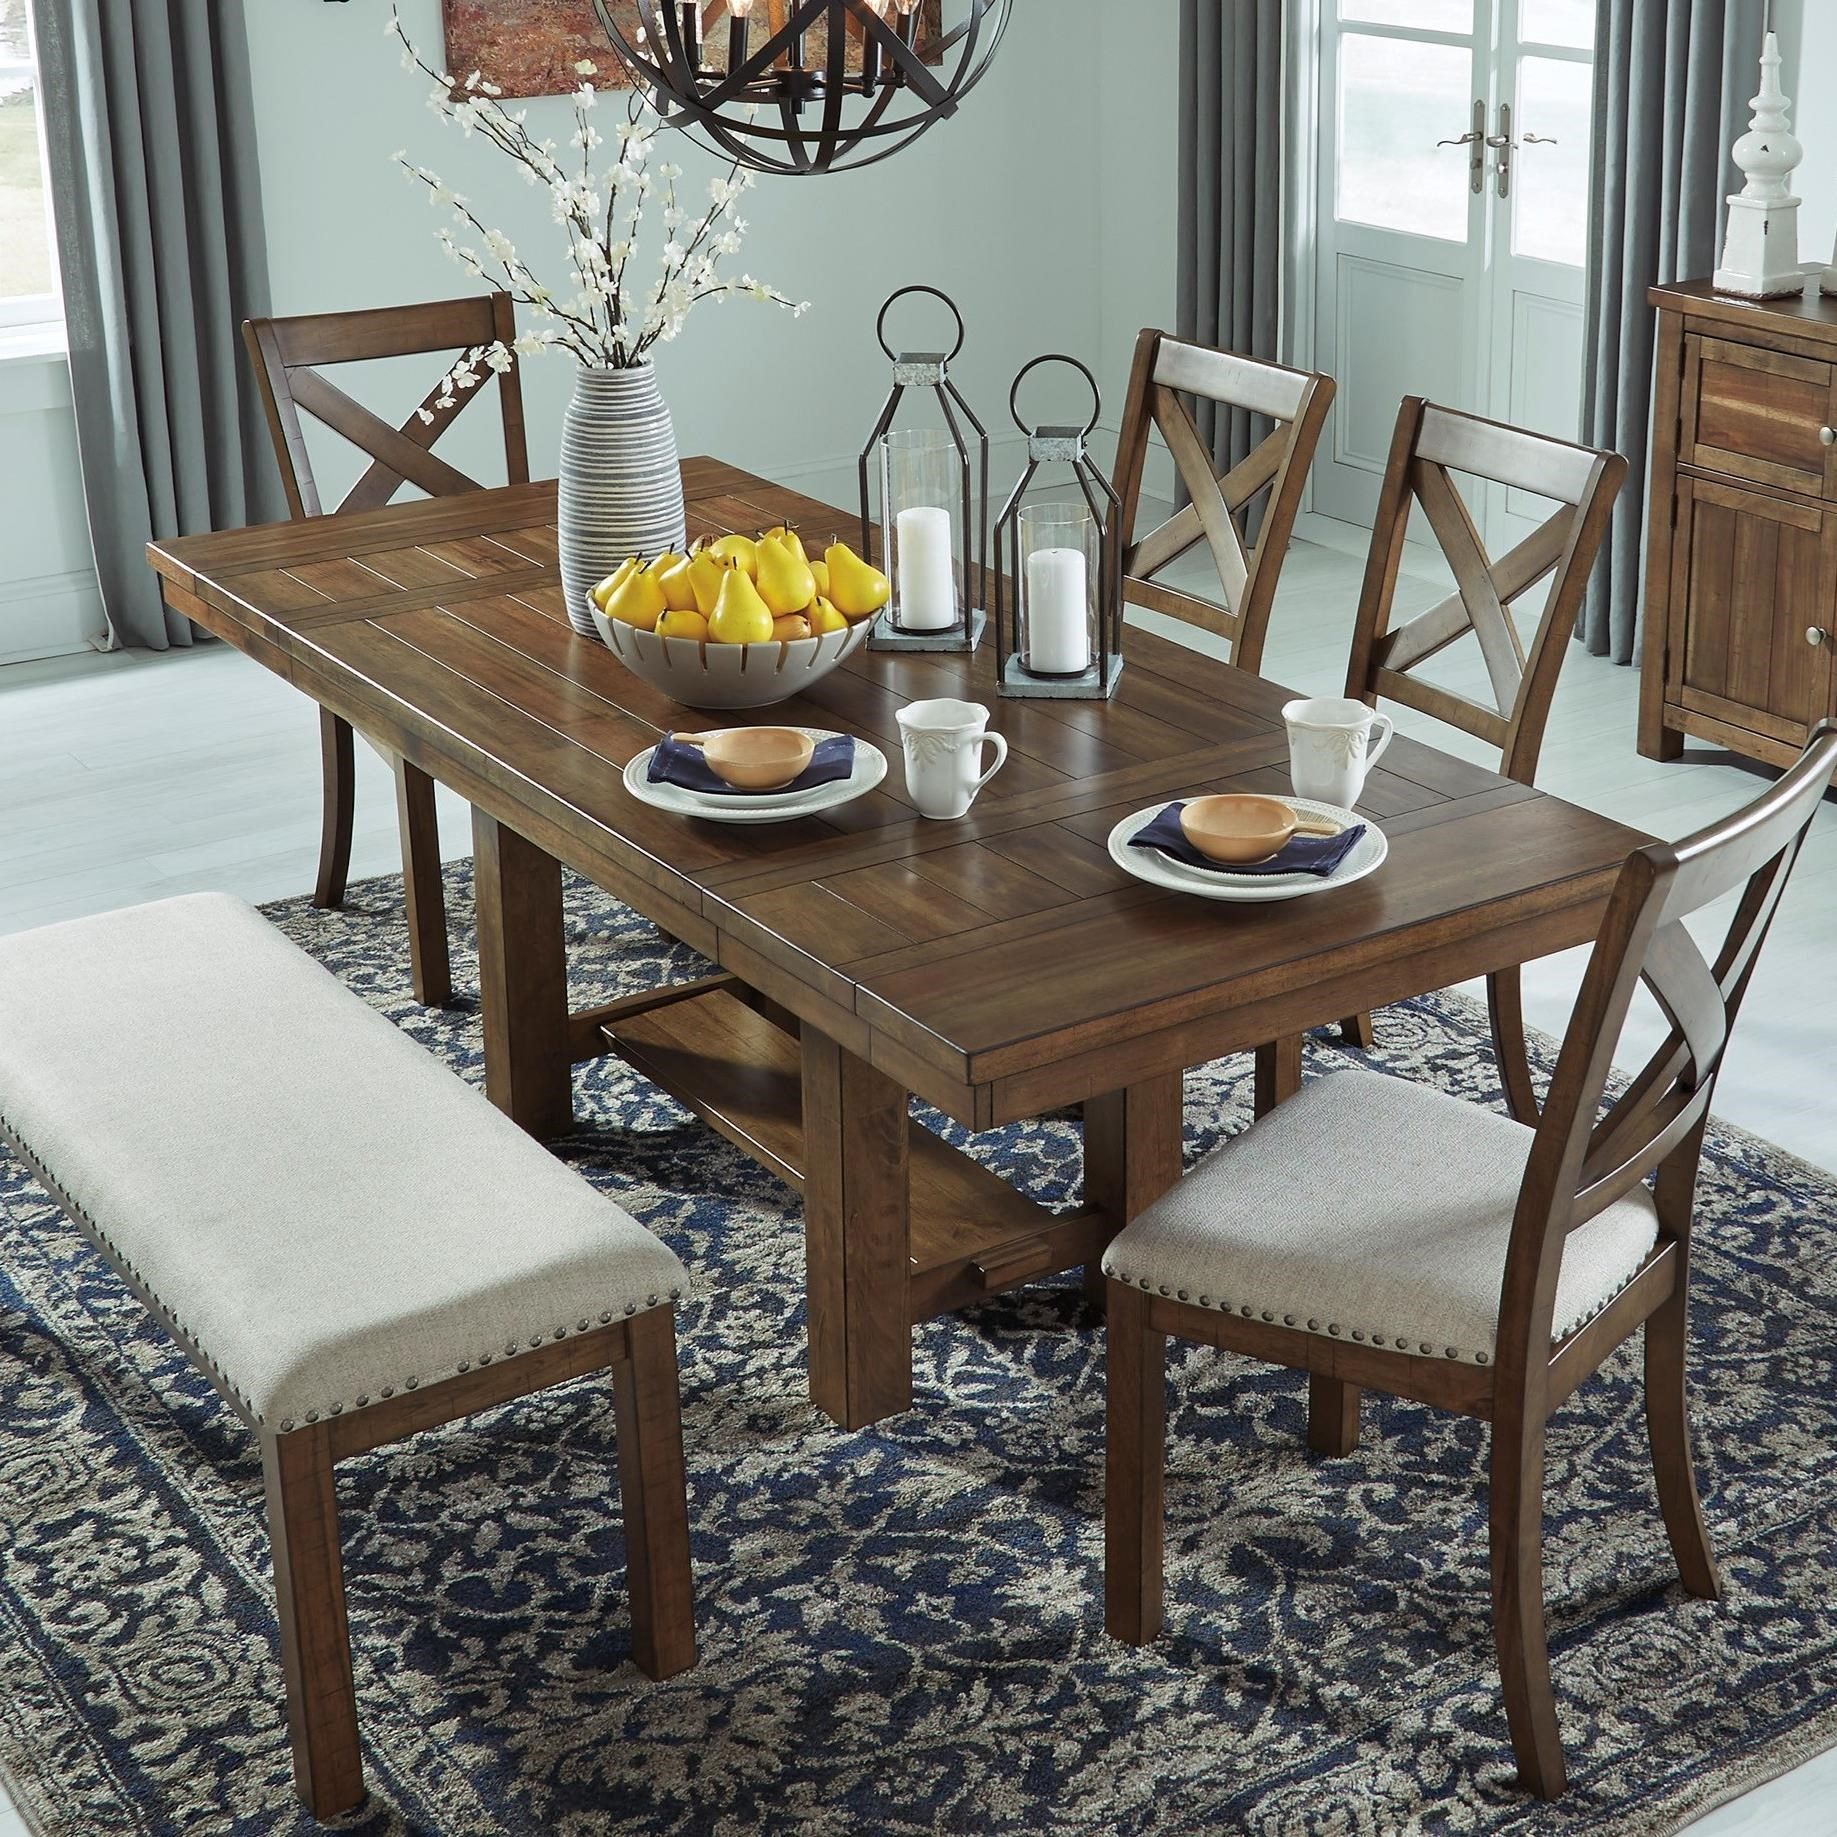 Ashley S Nest Decorating A Dining Room: Signature Design By Ashley Moriville D631-45 Rectangular